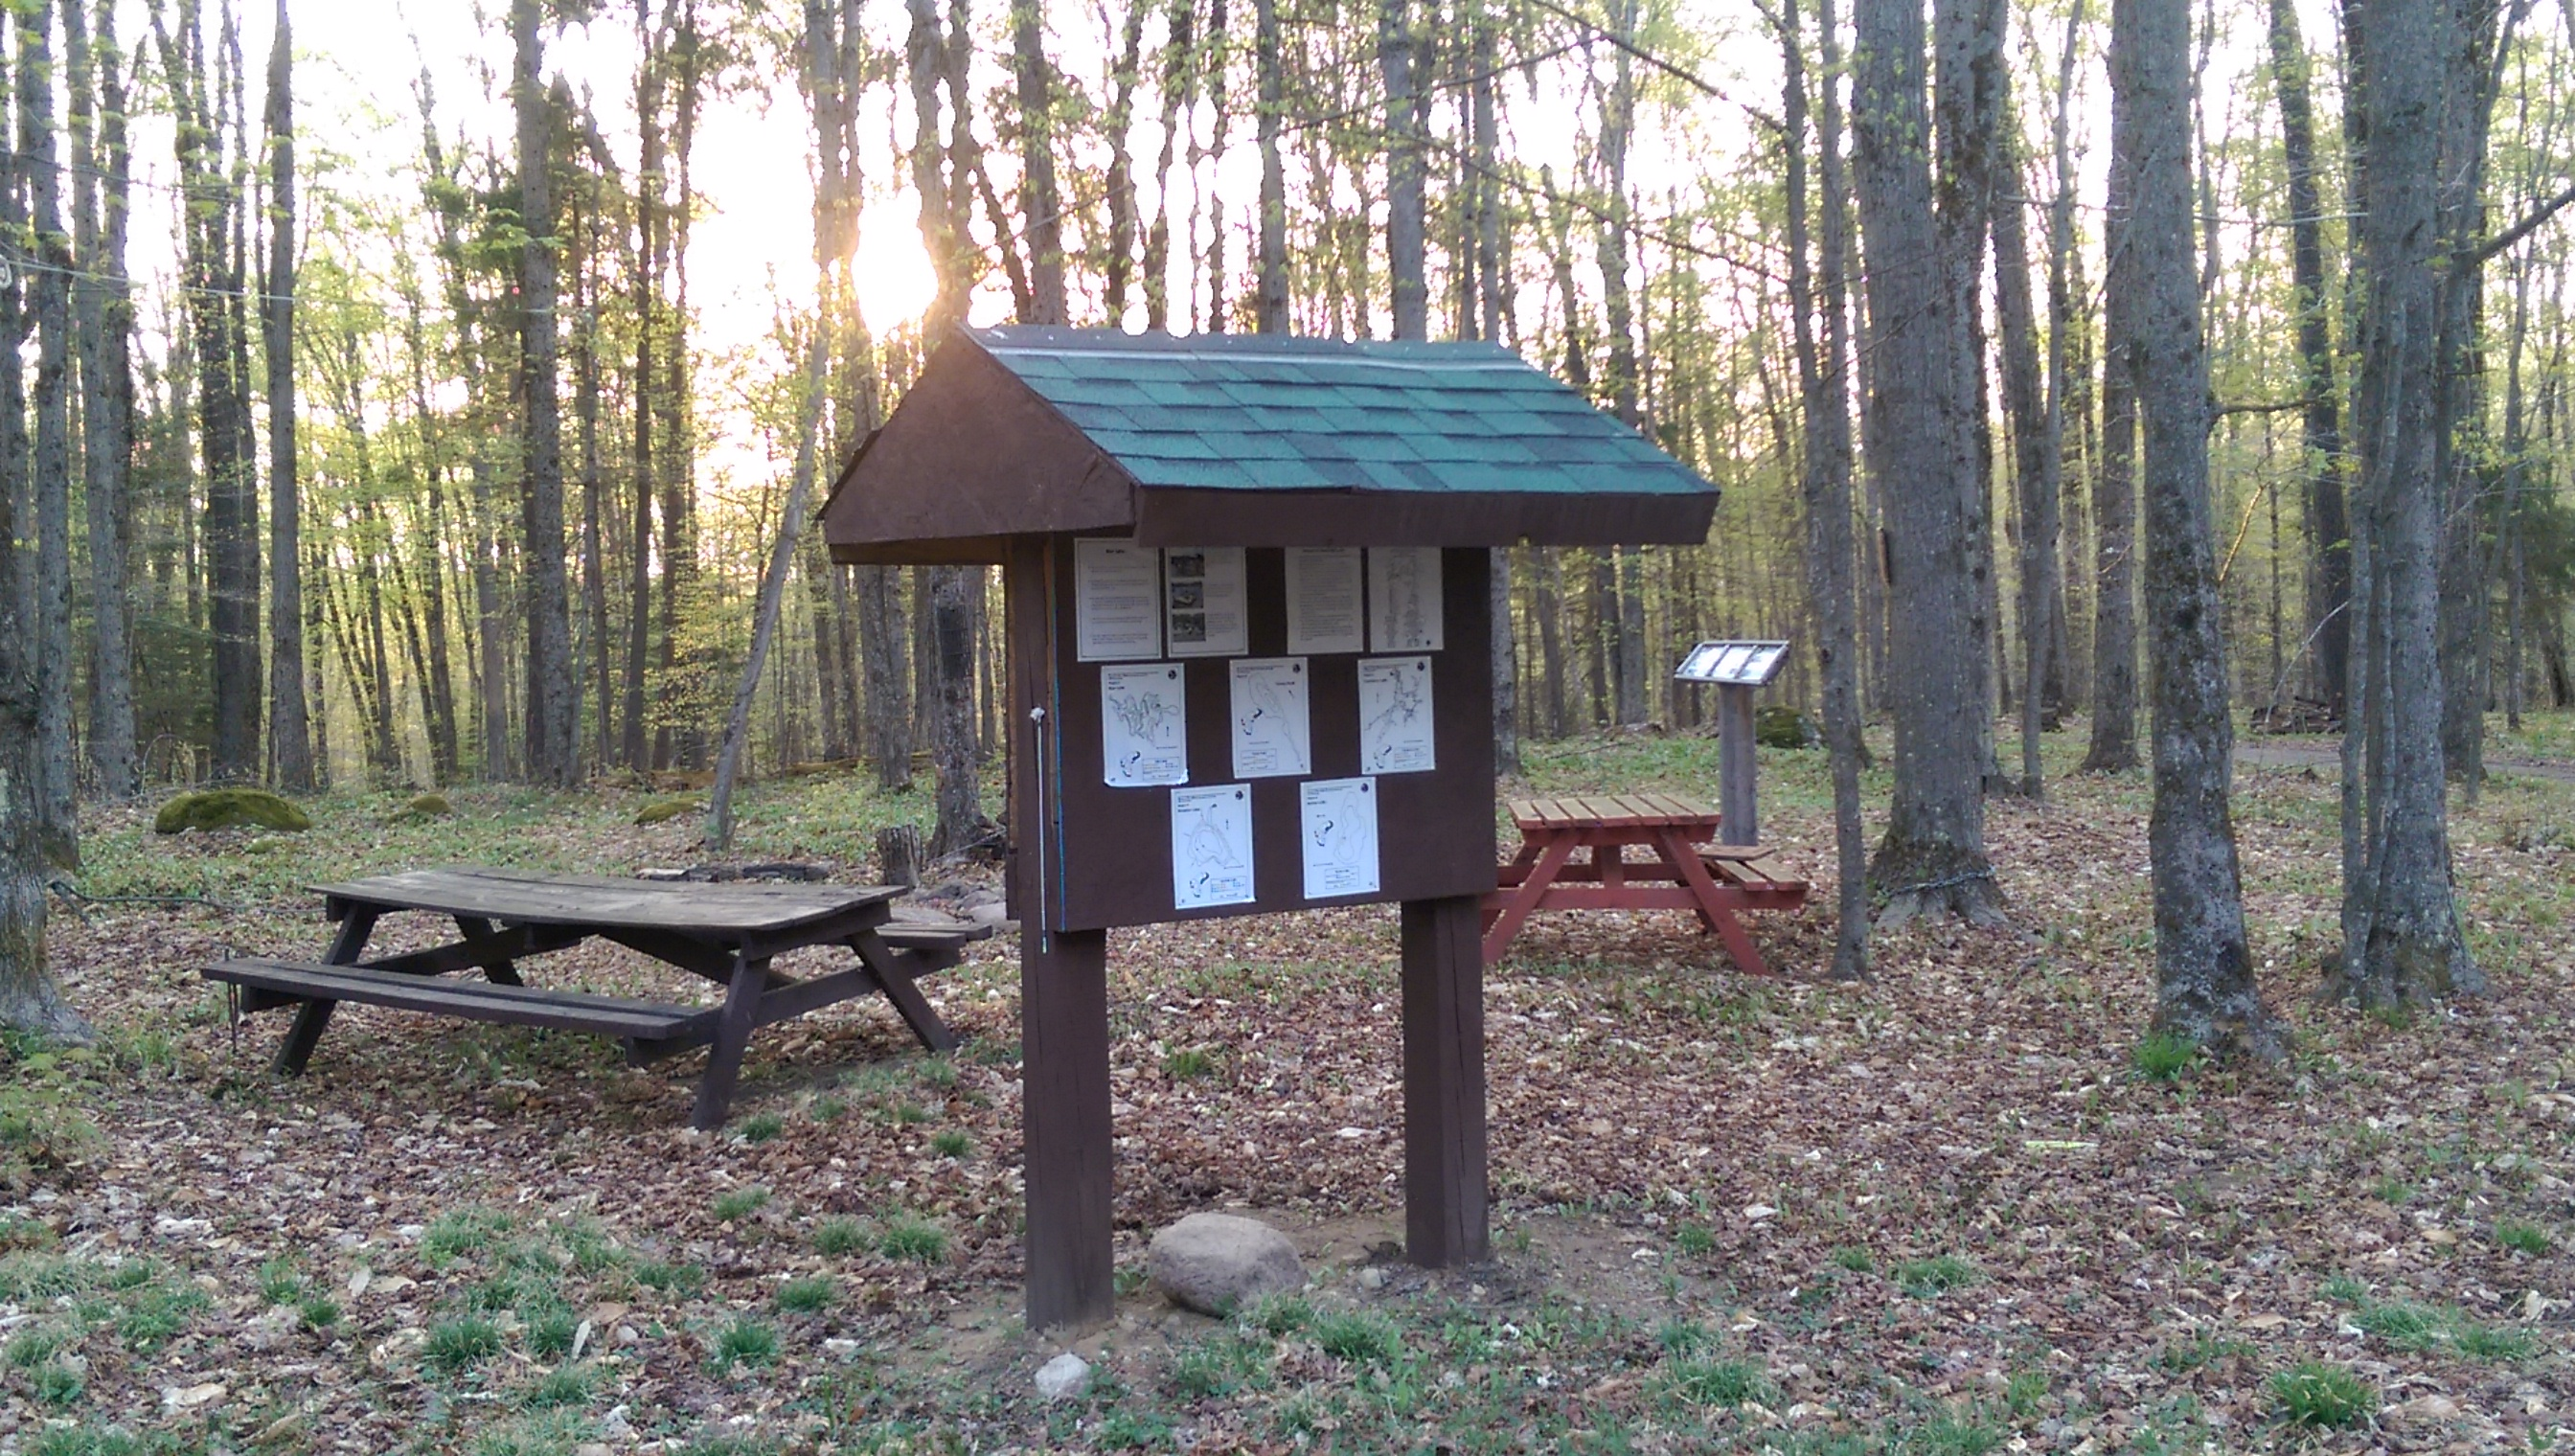 Informational Kiosk and Picnic Area